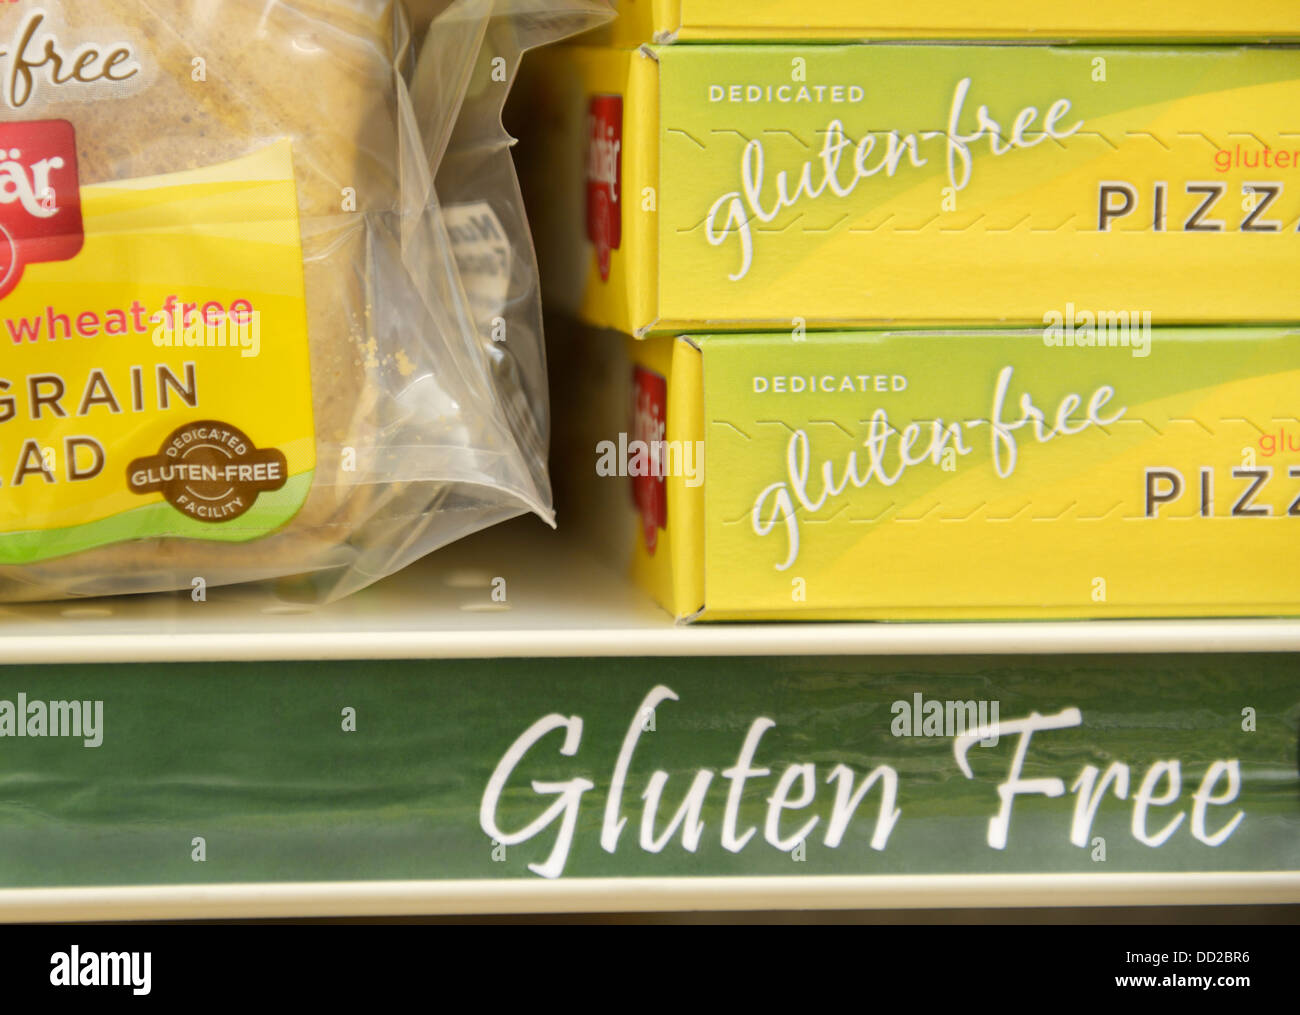 Gluten free food items on a shelf in the gluten free section of a supermarket - Stock Image